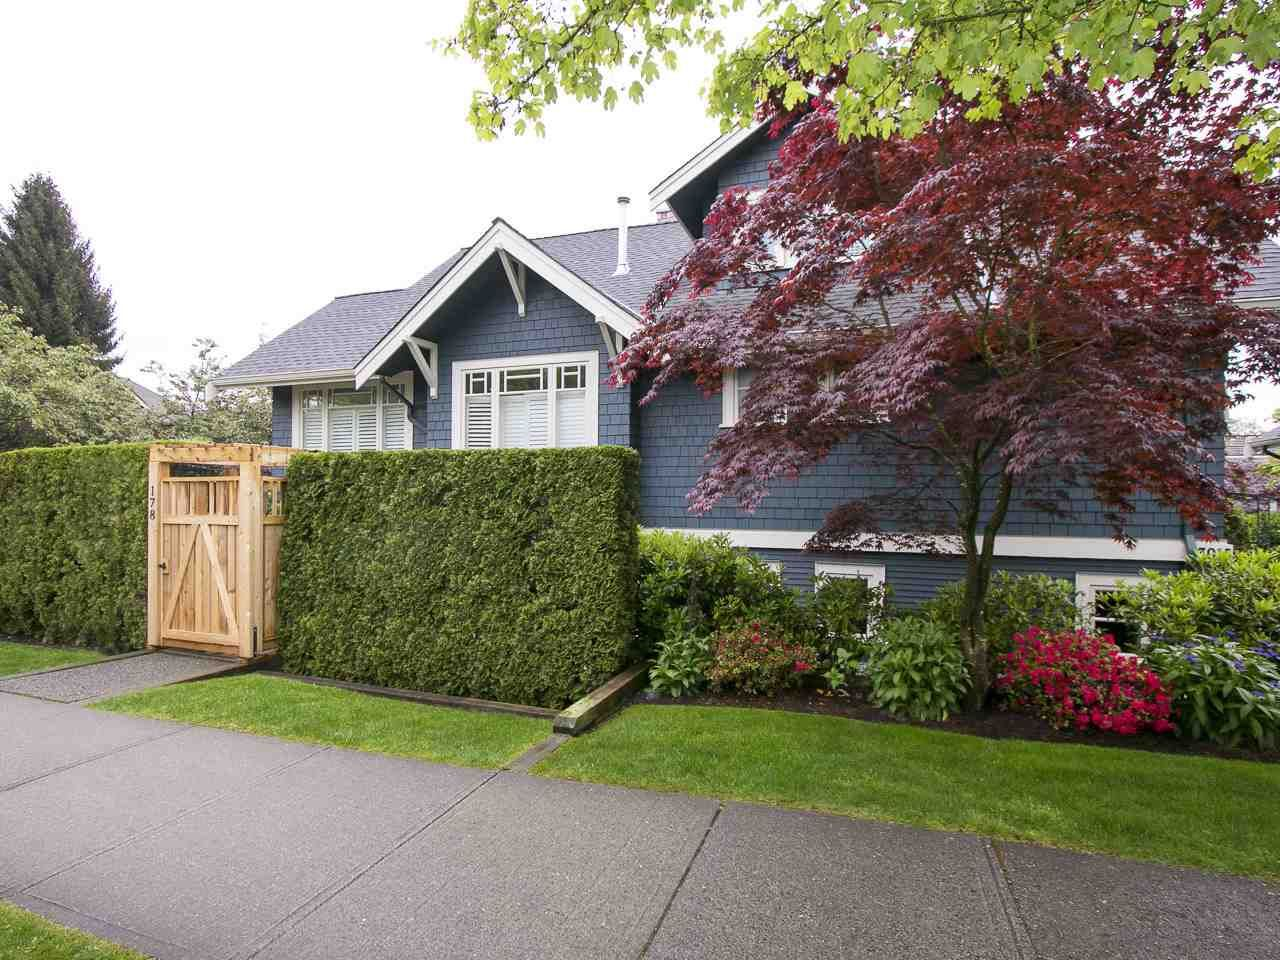 Main Photo: 178 W 14TH Avenue in Vancouver: Mount Pleasant VW Townhouse for sale (Vancouver West)  : MLS®# R2061246